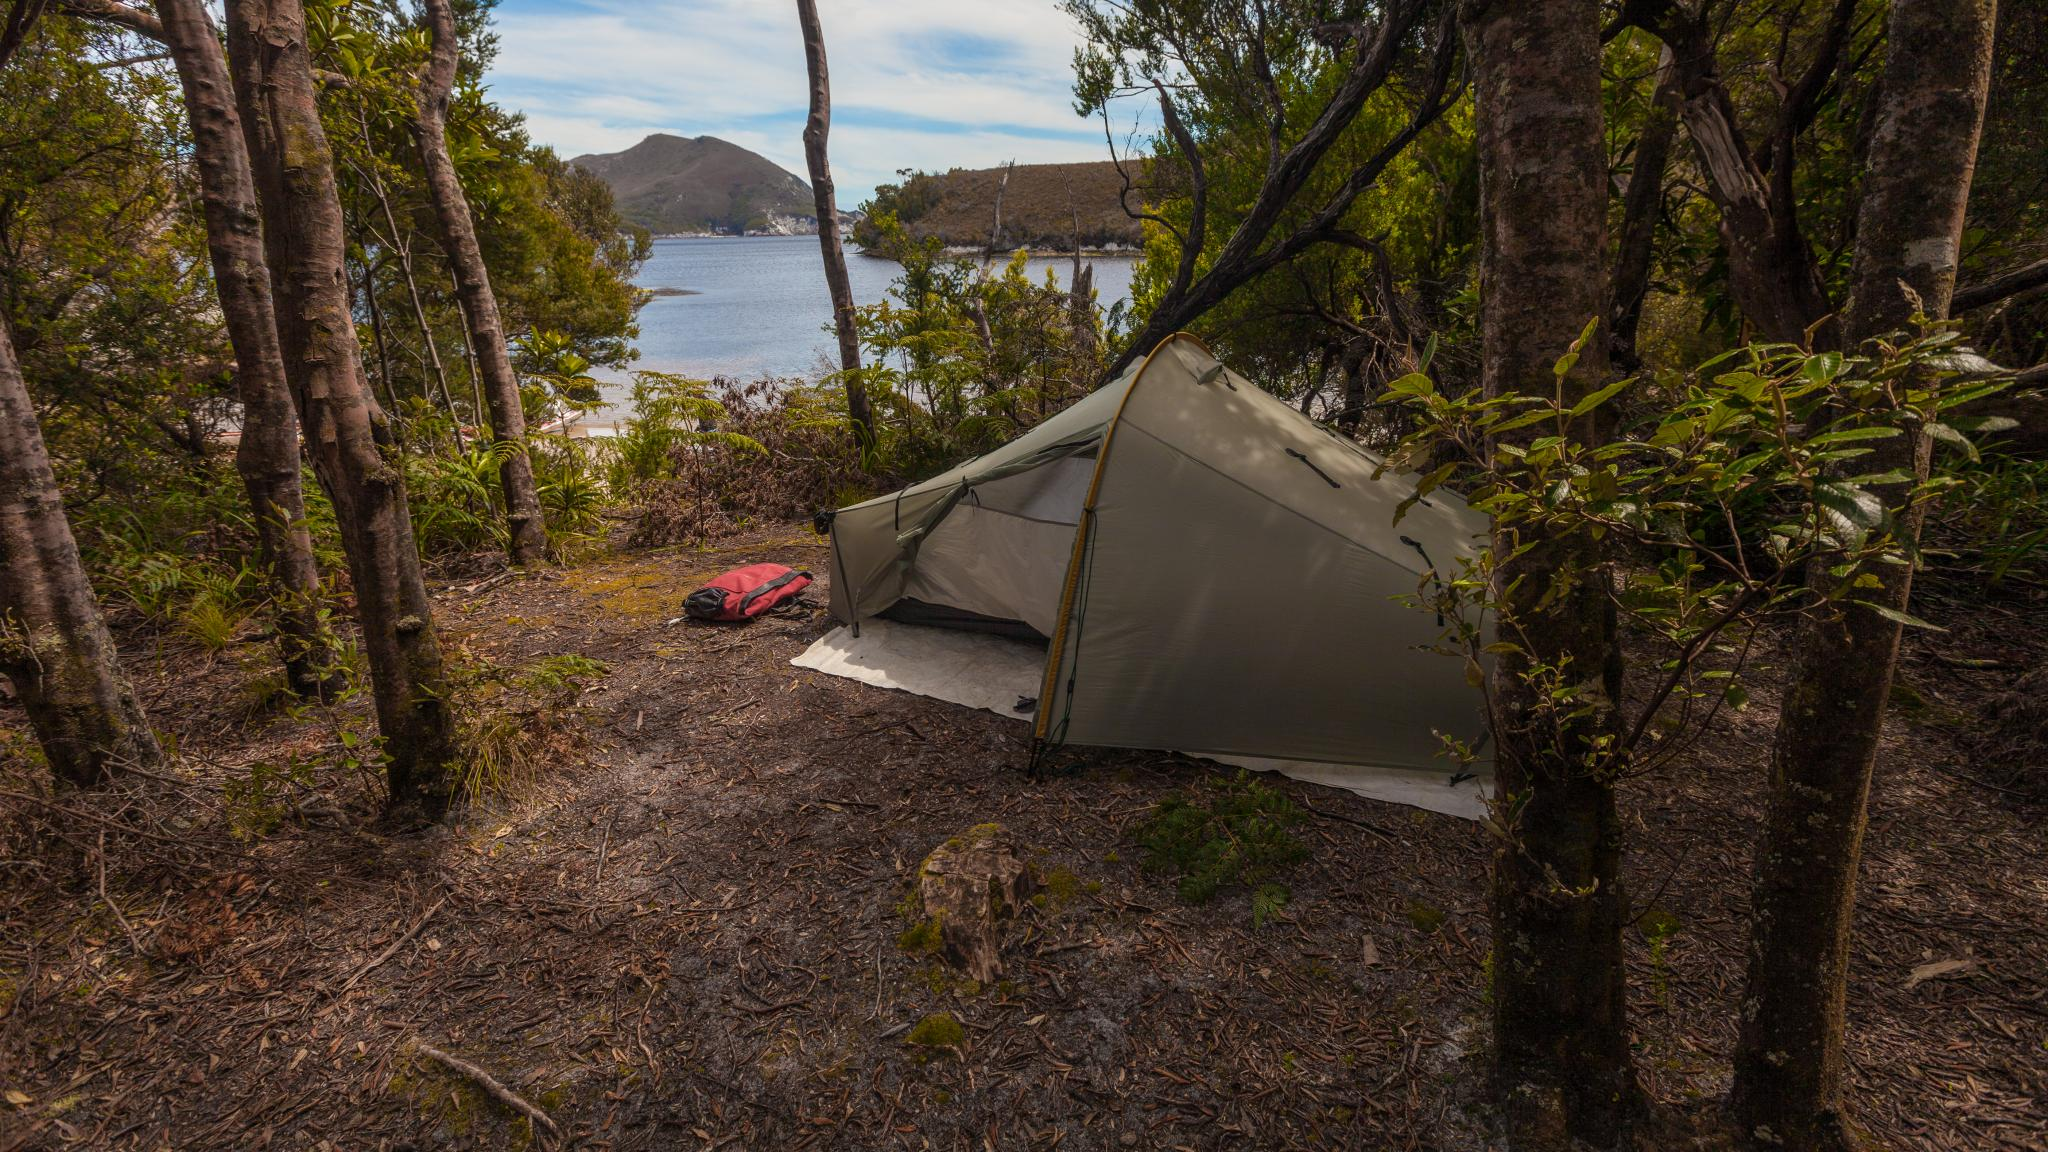 Camping at Bramble Cove, Port Davey, Southwest Tasmania